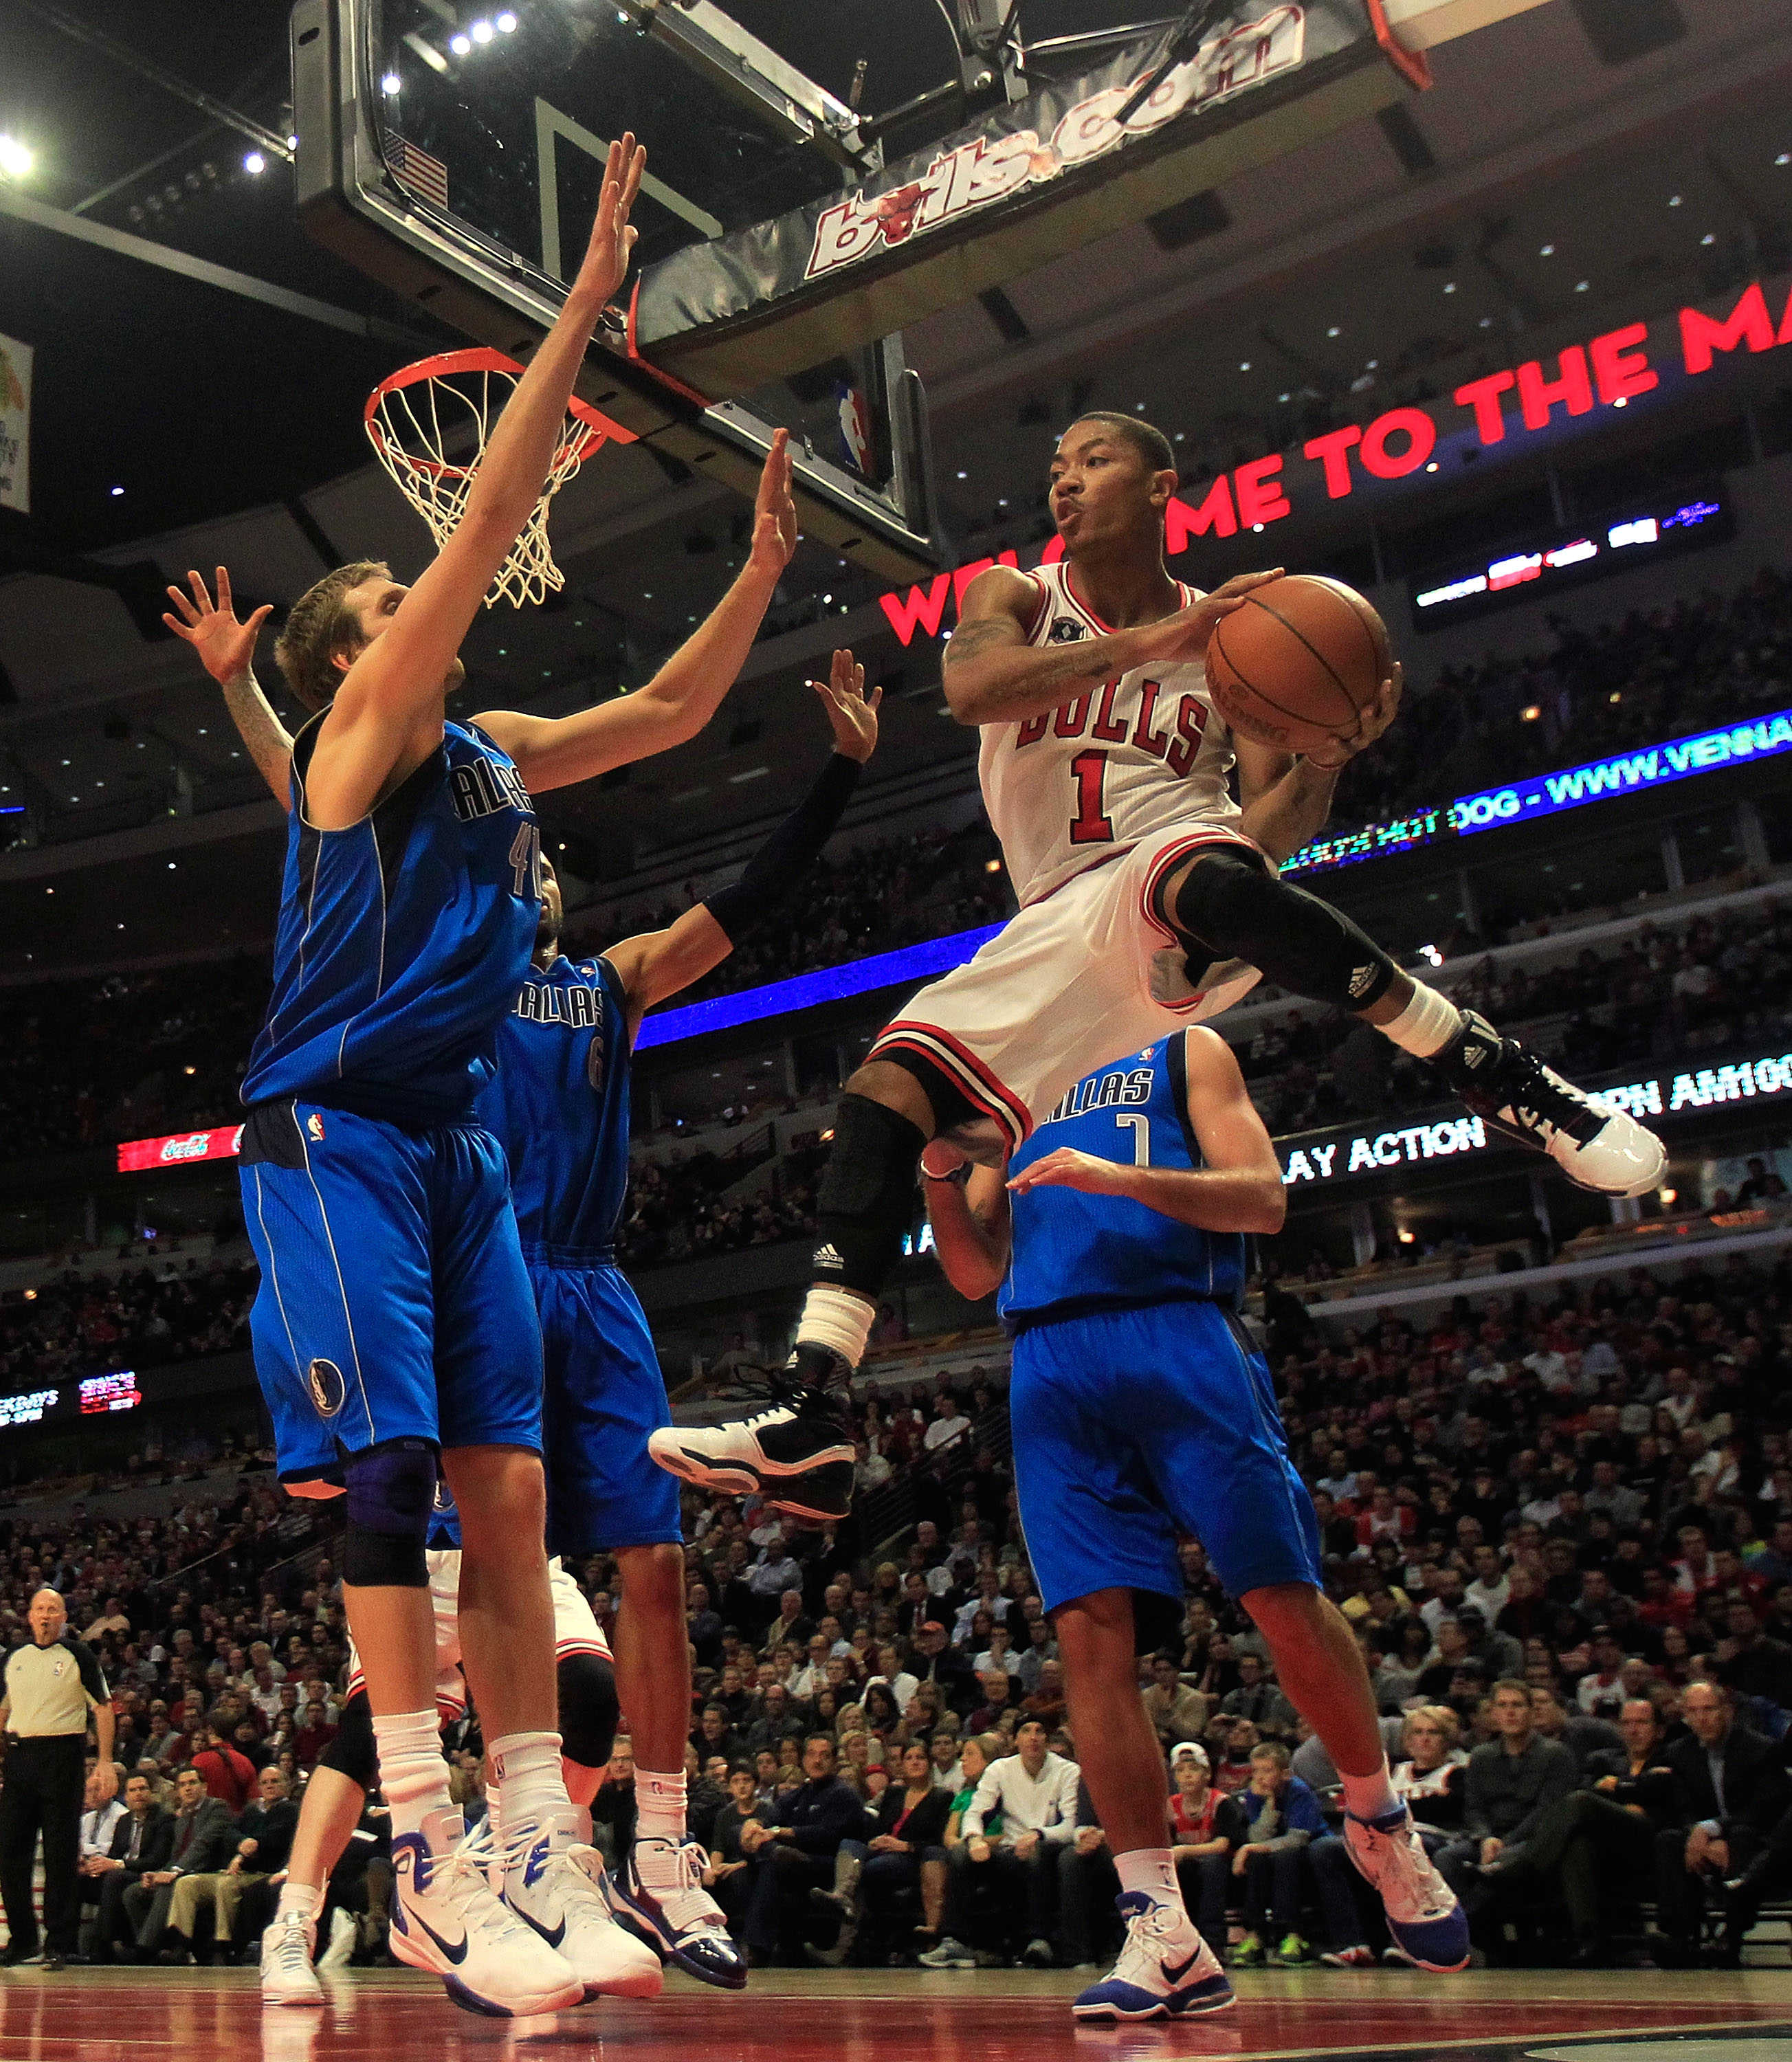 CHICAGO, IL - JANUARY 20: Derrick Rose #1 of the Chicago Bulls leaps to pass the ball around Dirk Nowitzki #41 of the Dallas Mavericks at the United Center on January 20, 2011 in Chicago, Illinois. The Bulls defeated the Mavericks 82-77. NOTE TO USER: Use